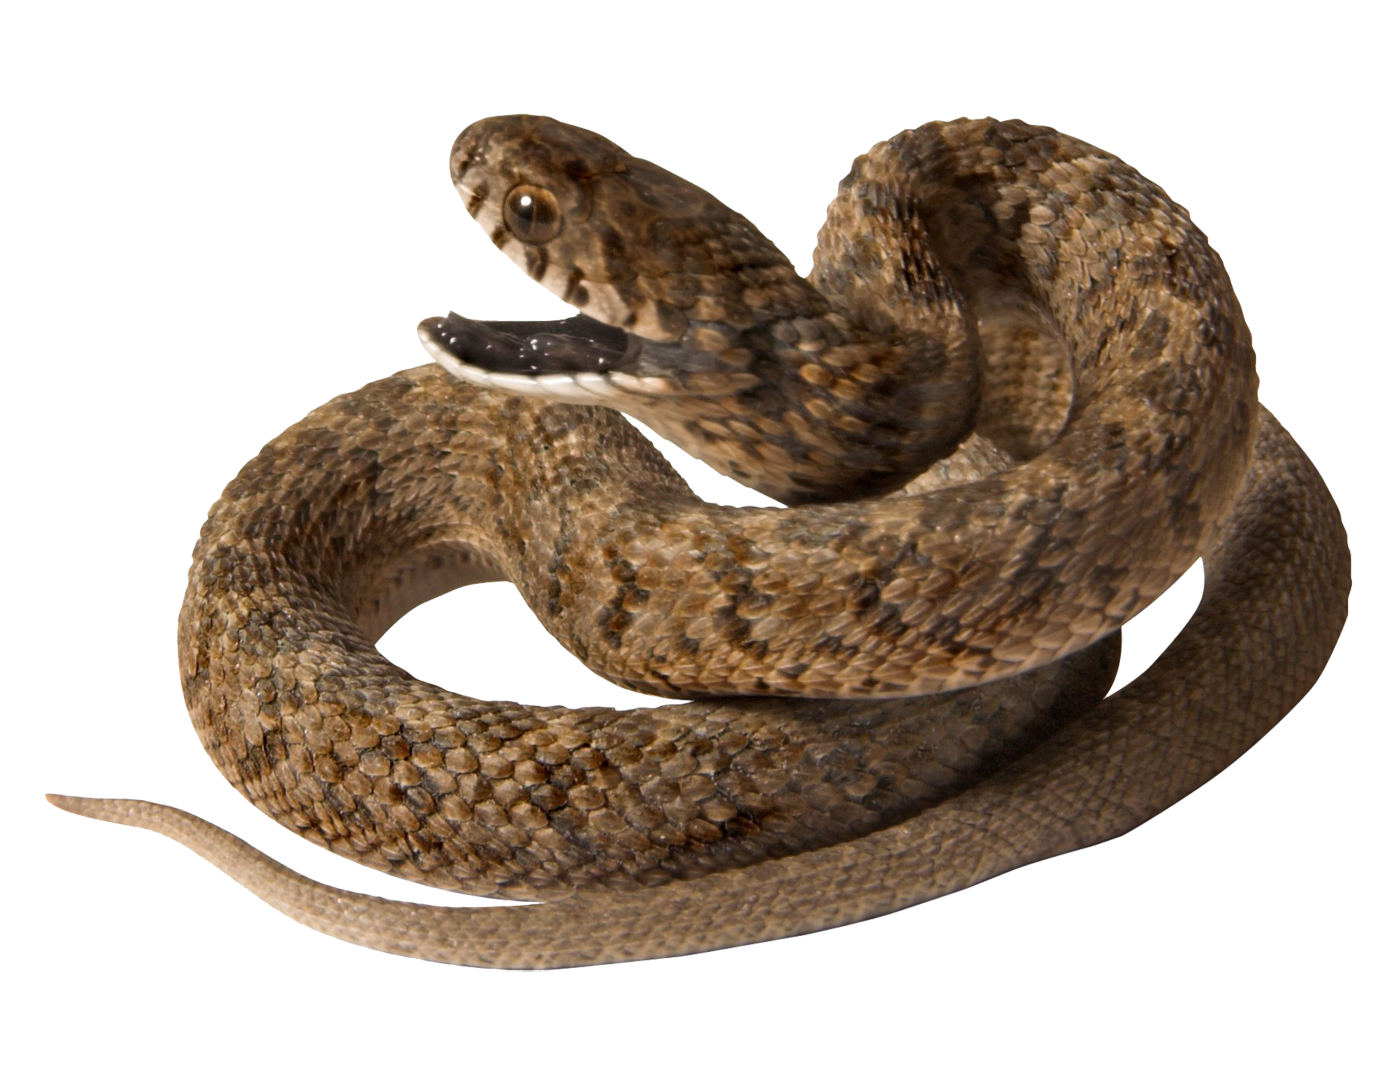 Png image purepng free. Snake clipart brown snake